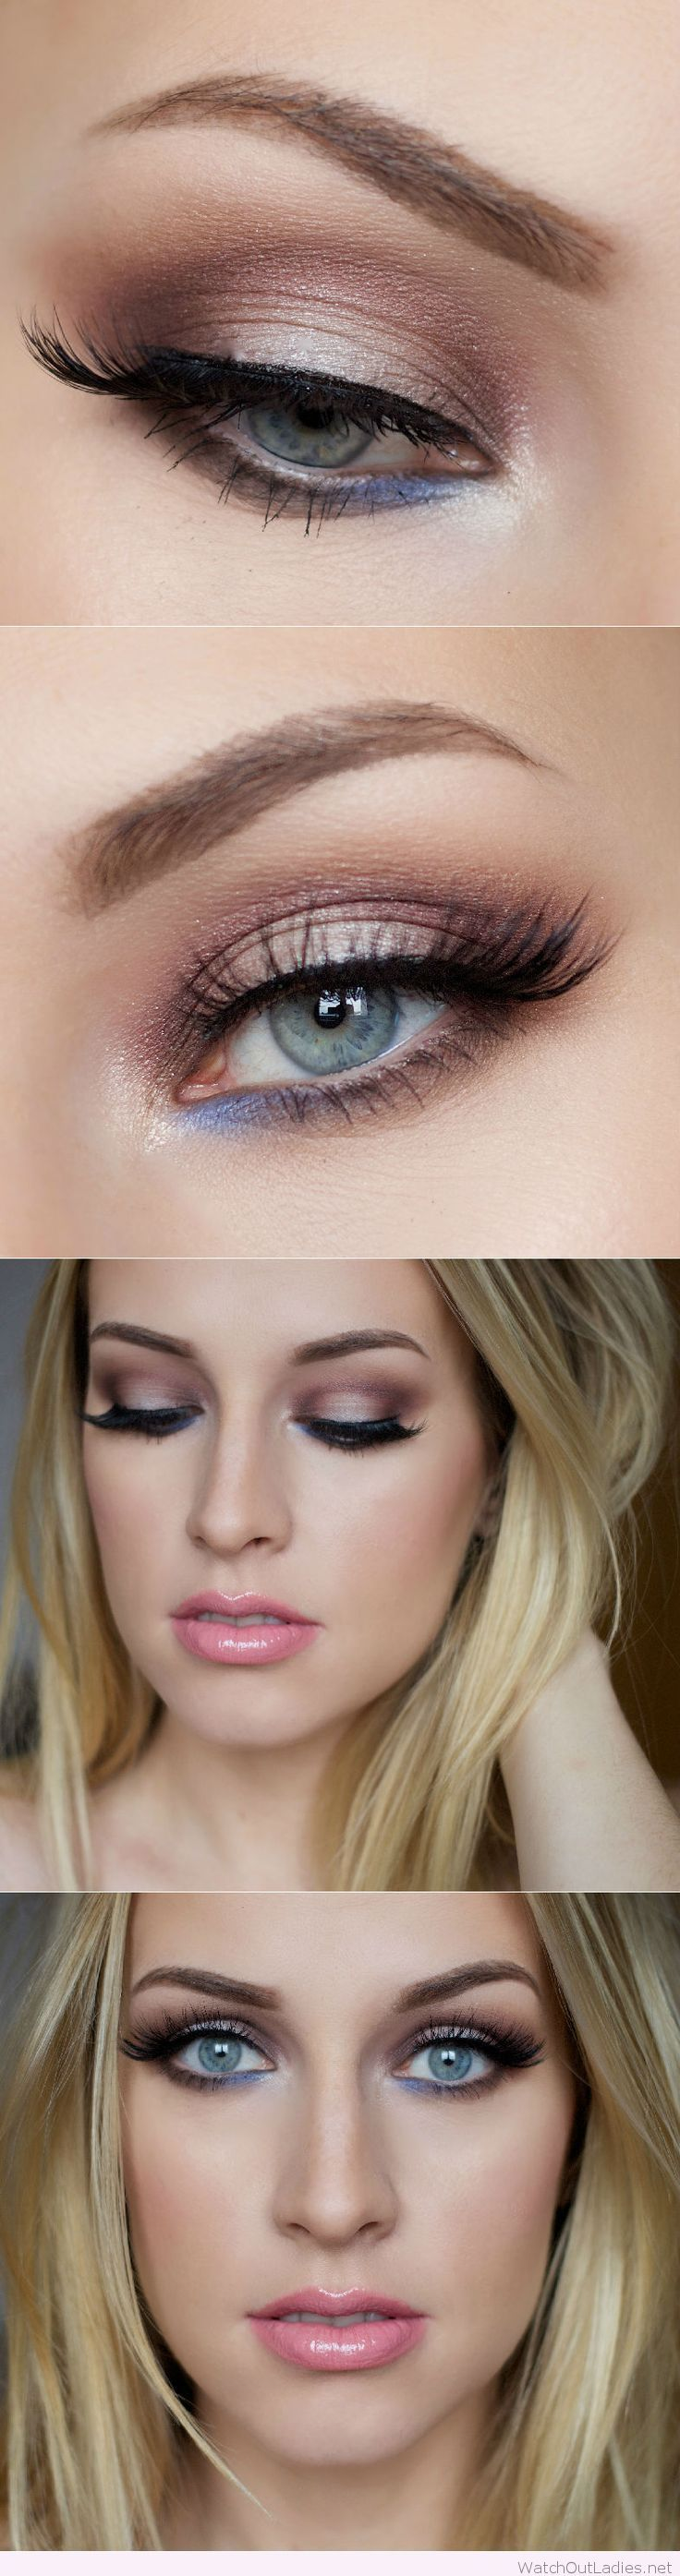 Beautiful rose eye make-up with blue accent